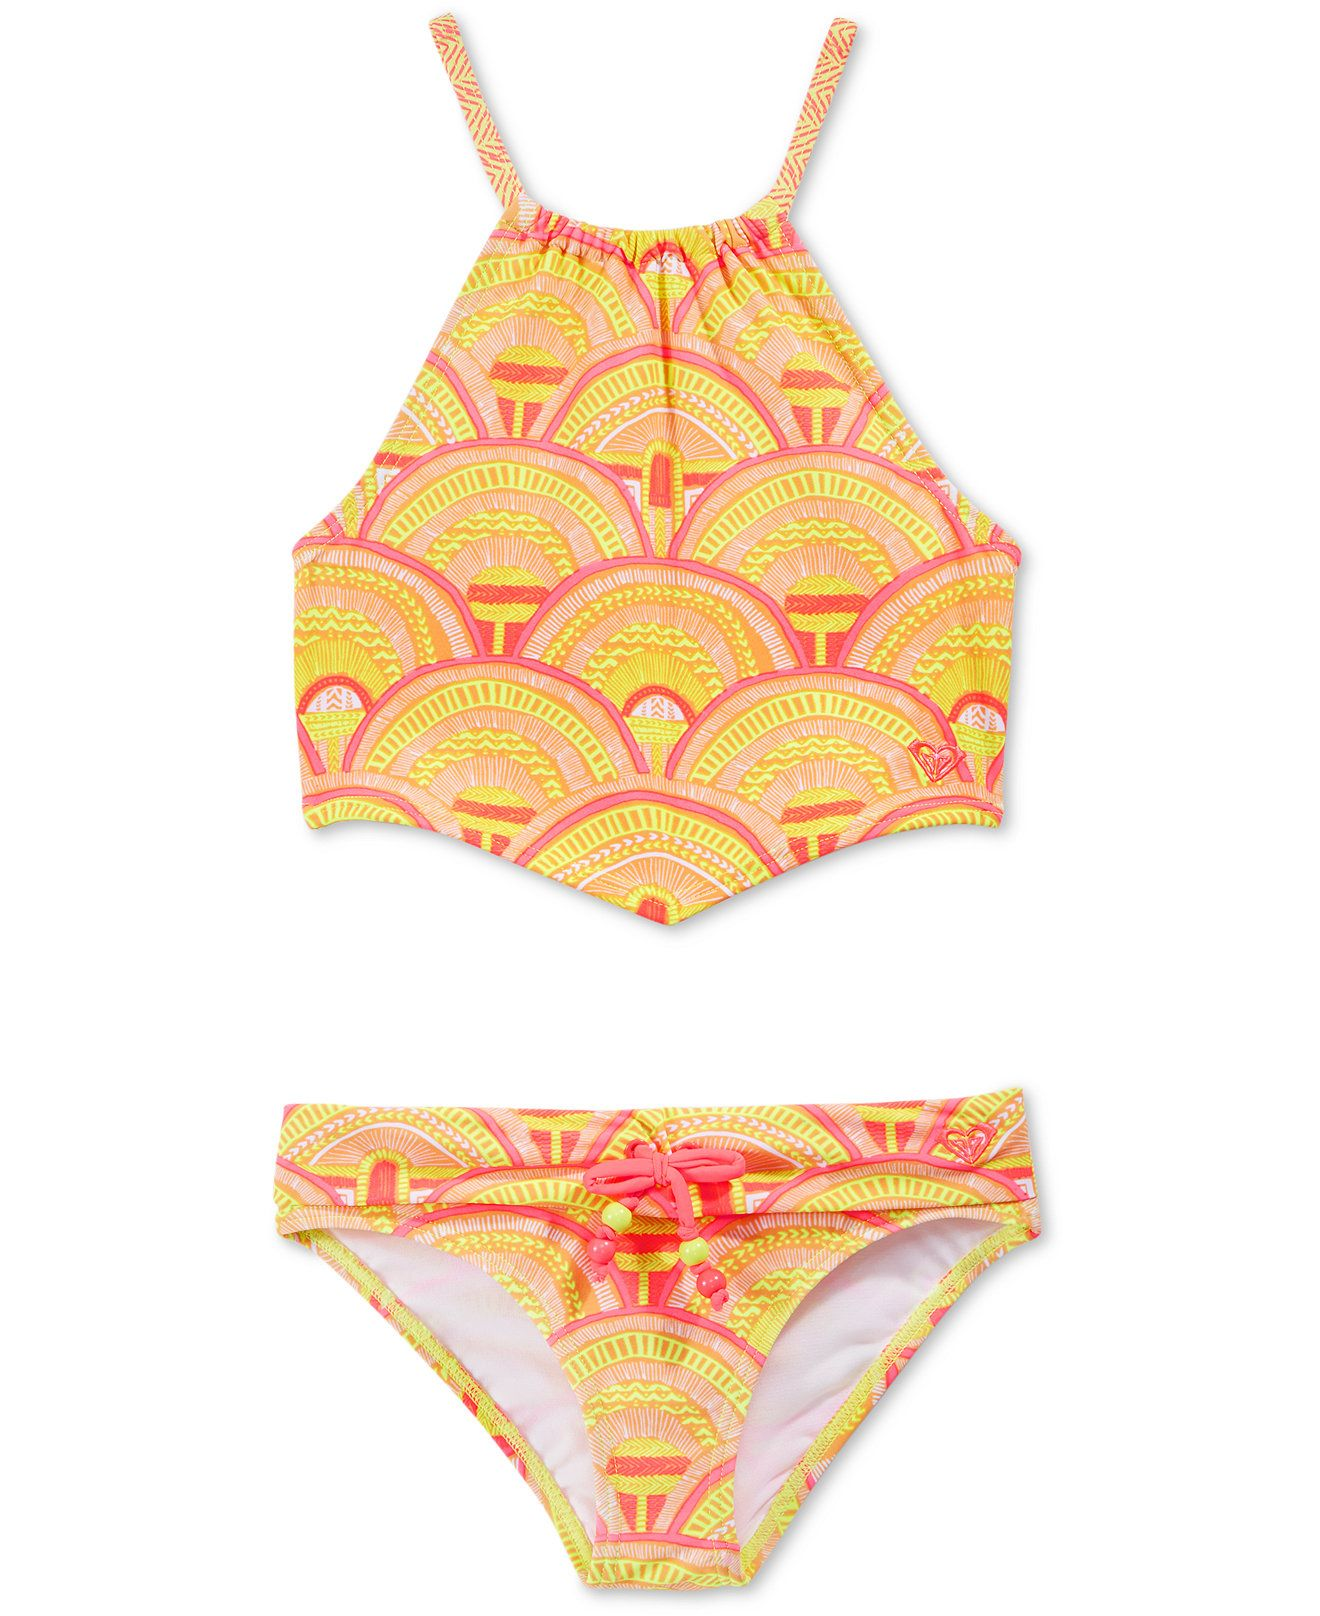 Roxy Bikinis, Tankinis & Swimsuits There's just one word to describe our line of Roxy bikinis - incredible. Innovative designs set this swimwear apart from .